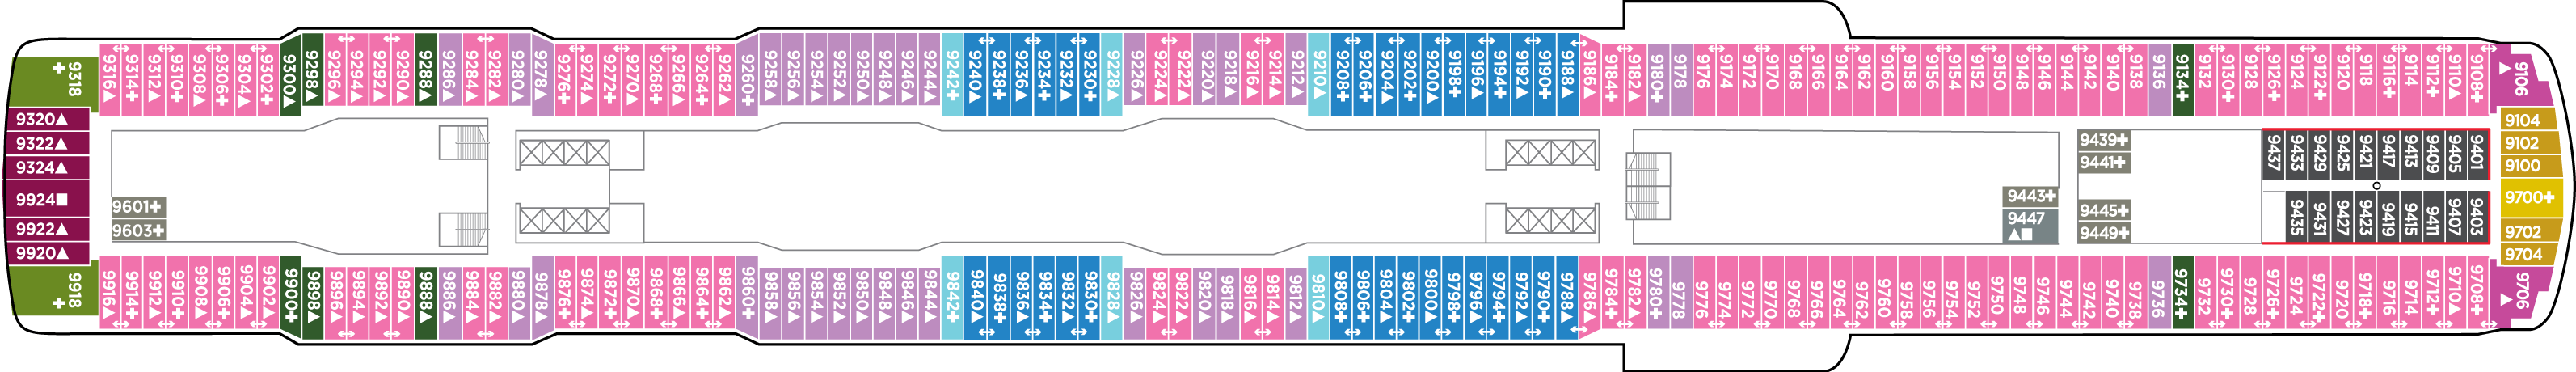 Norwegian Cruise Lines Norwegian Bliss Deck Plans Deck 9.png